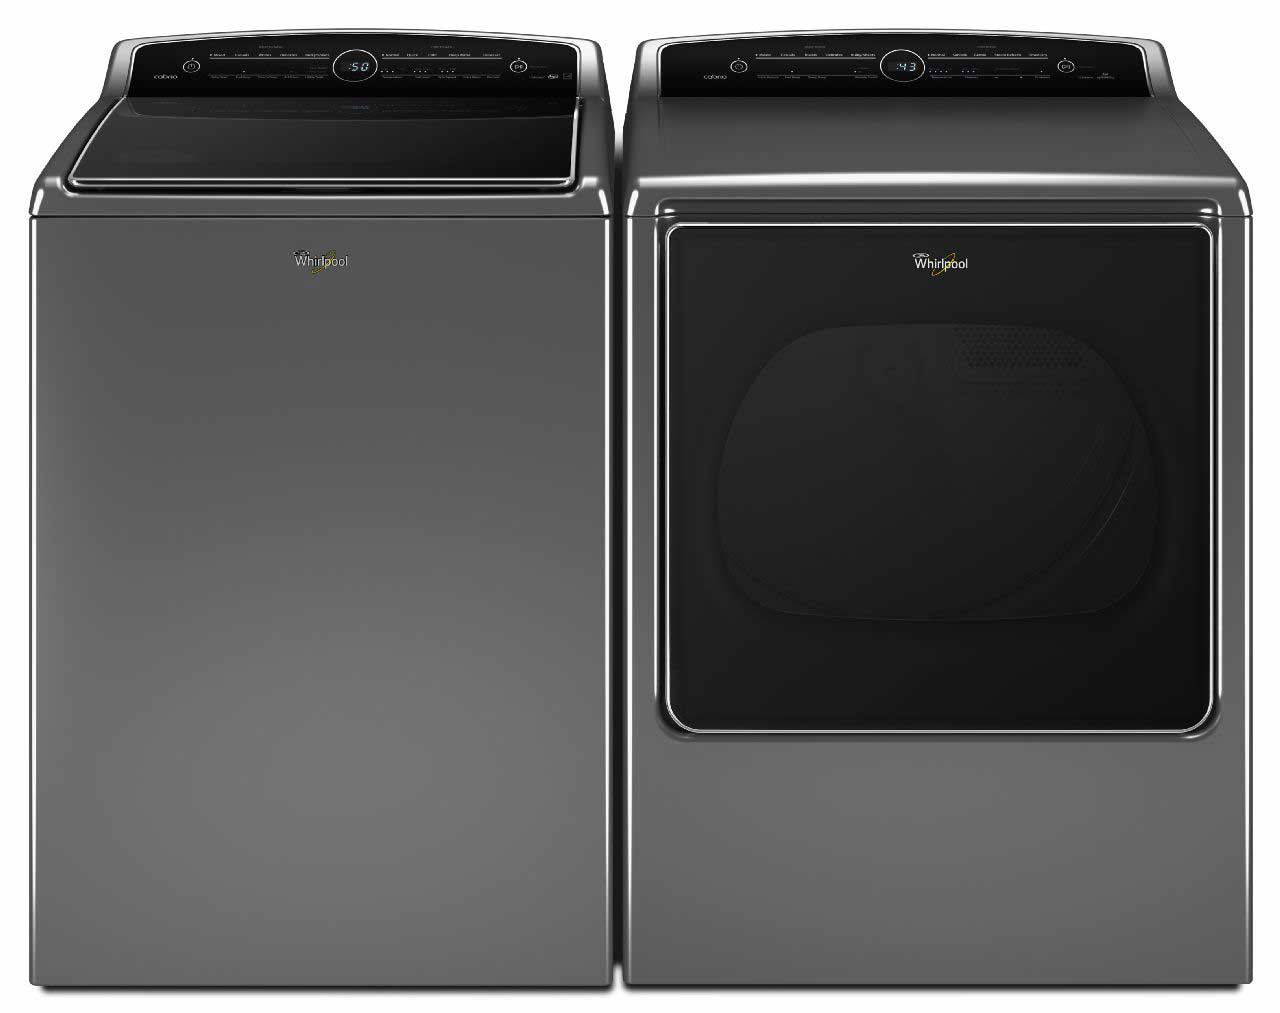 Whirlpool brand imagines smart homes with a conscience at Best washer 2015